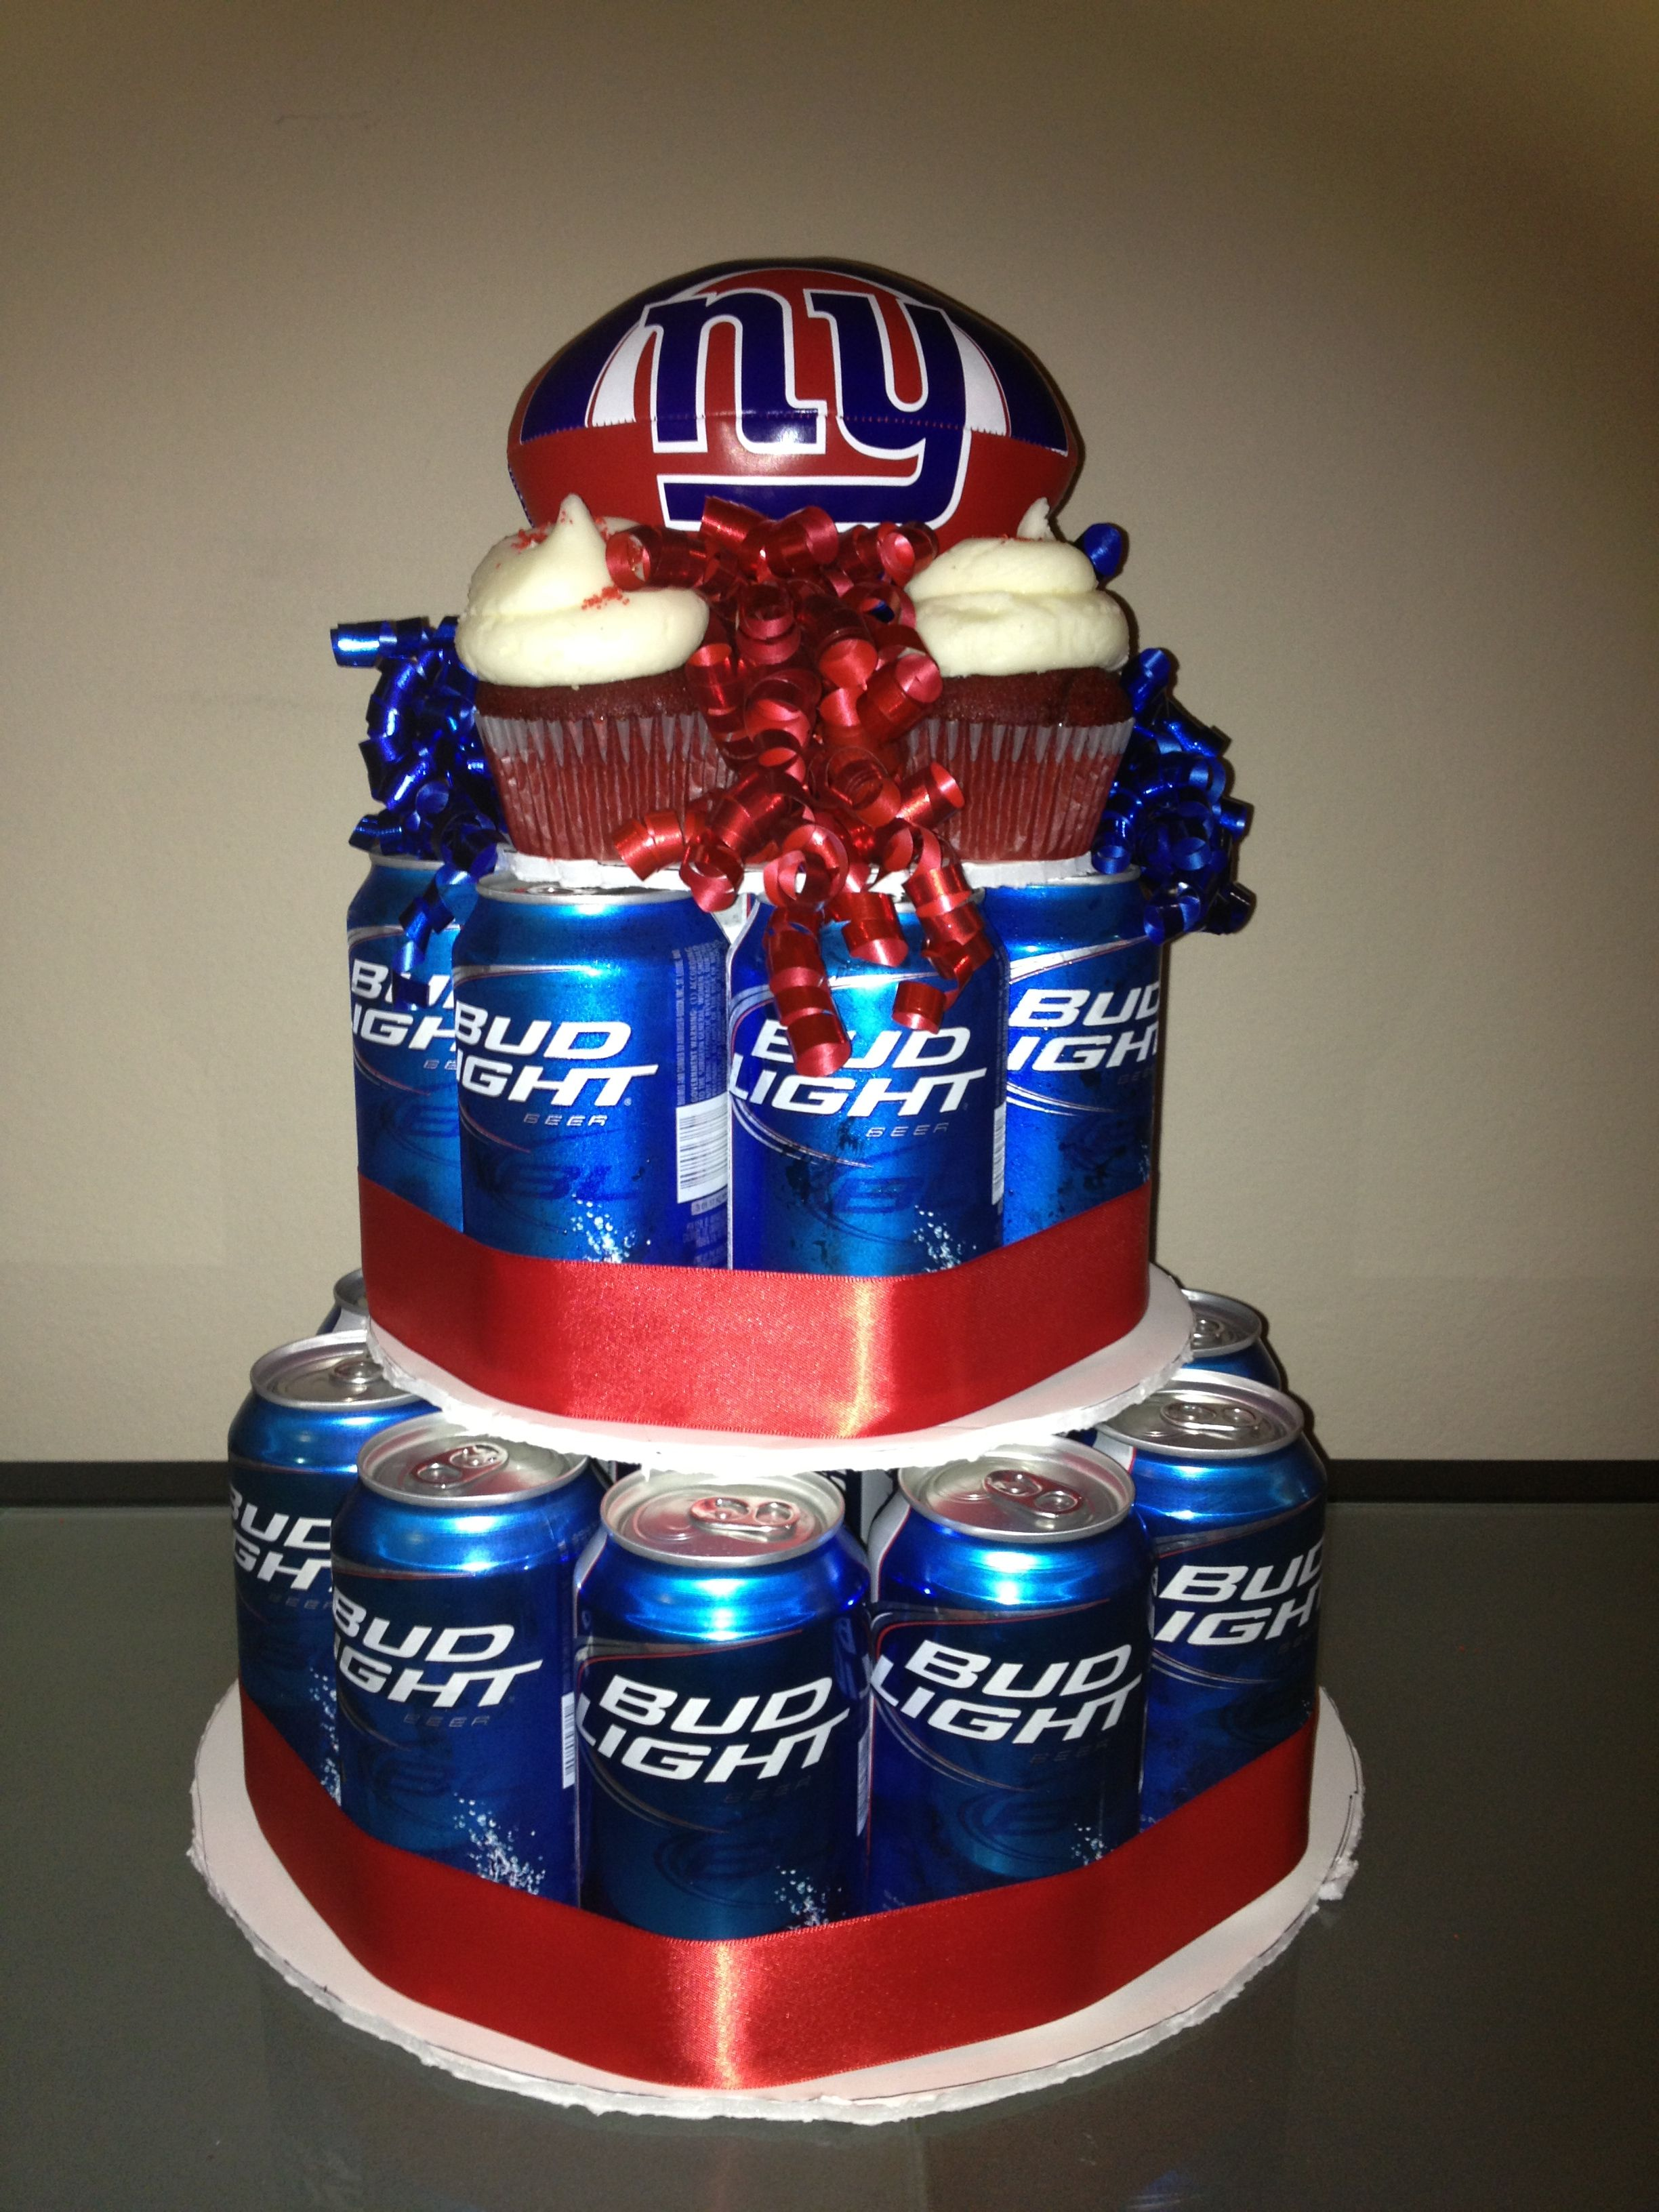 Beer Cake New York Giants Colors Bud Light And Some Red